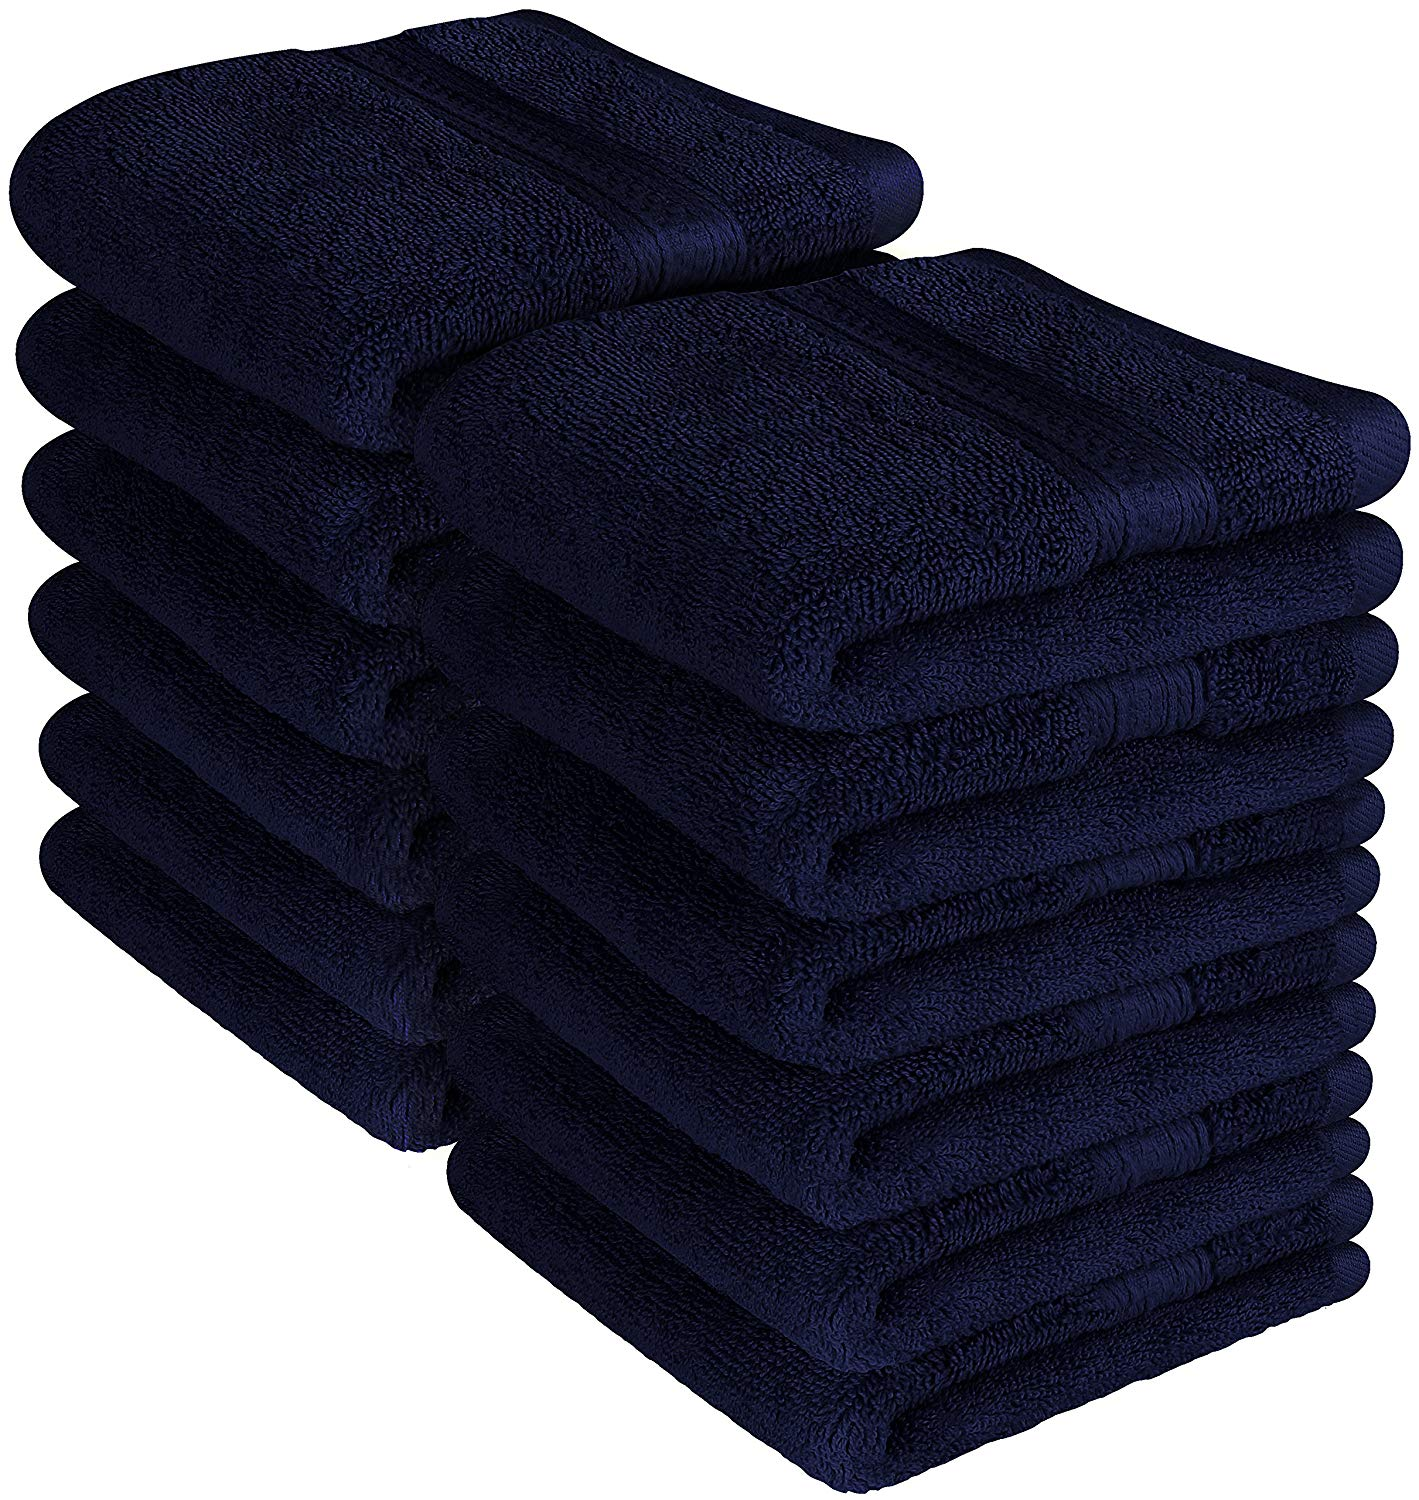 Premium 700 GSM Washcloths Towels Set 12 Pack, Navy Blue, 12 x 12 Inches Multipurpose Extra Soft Fingertip... by Beauty Threadz